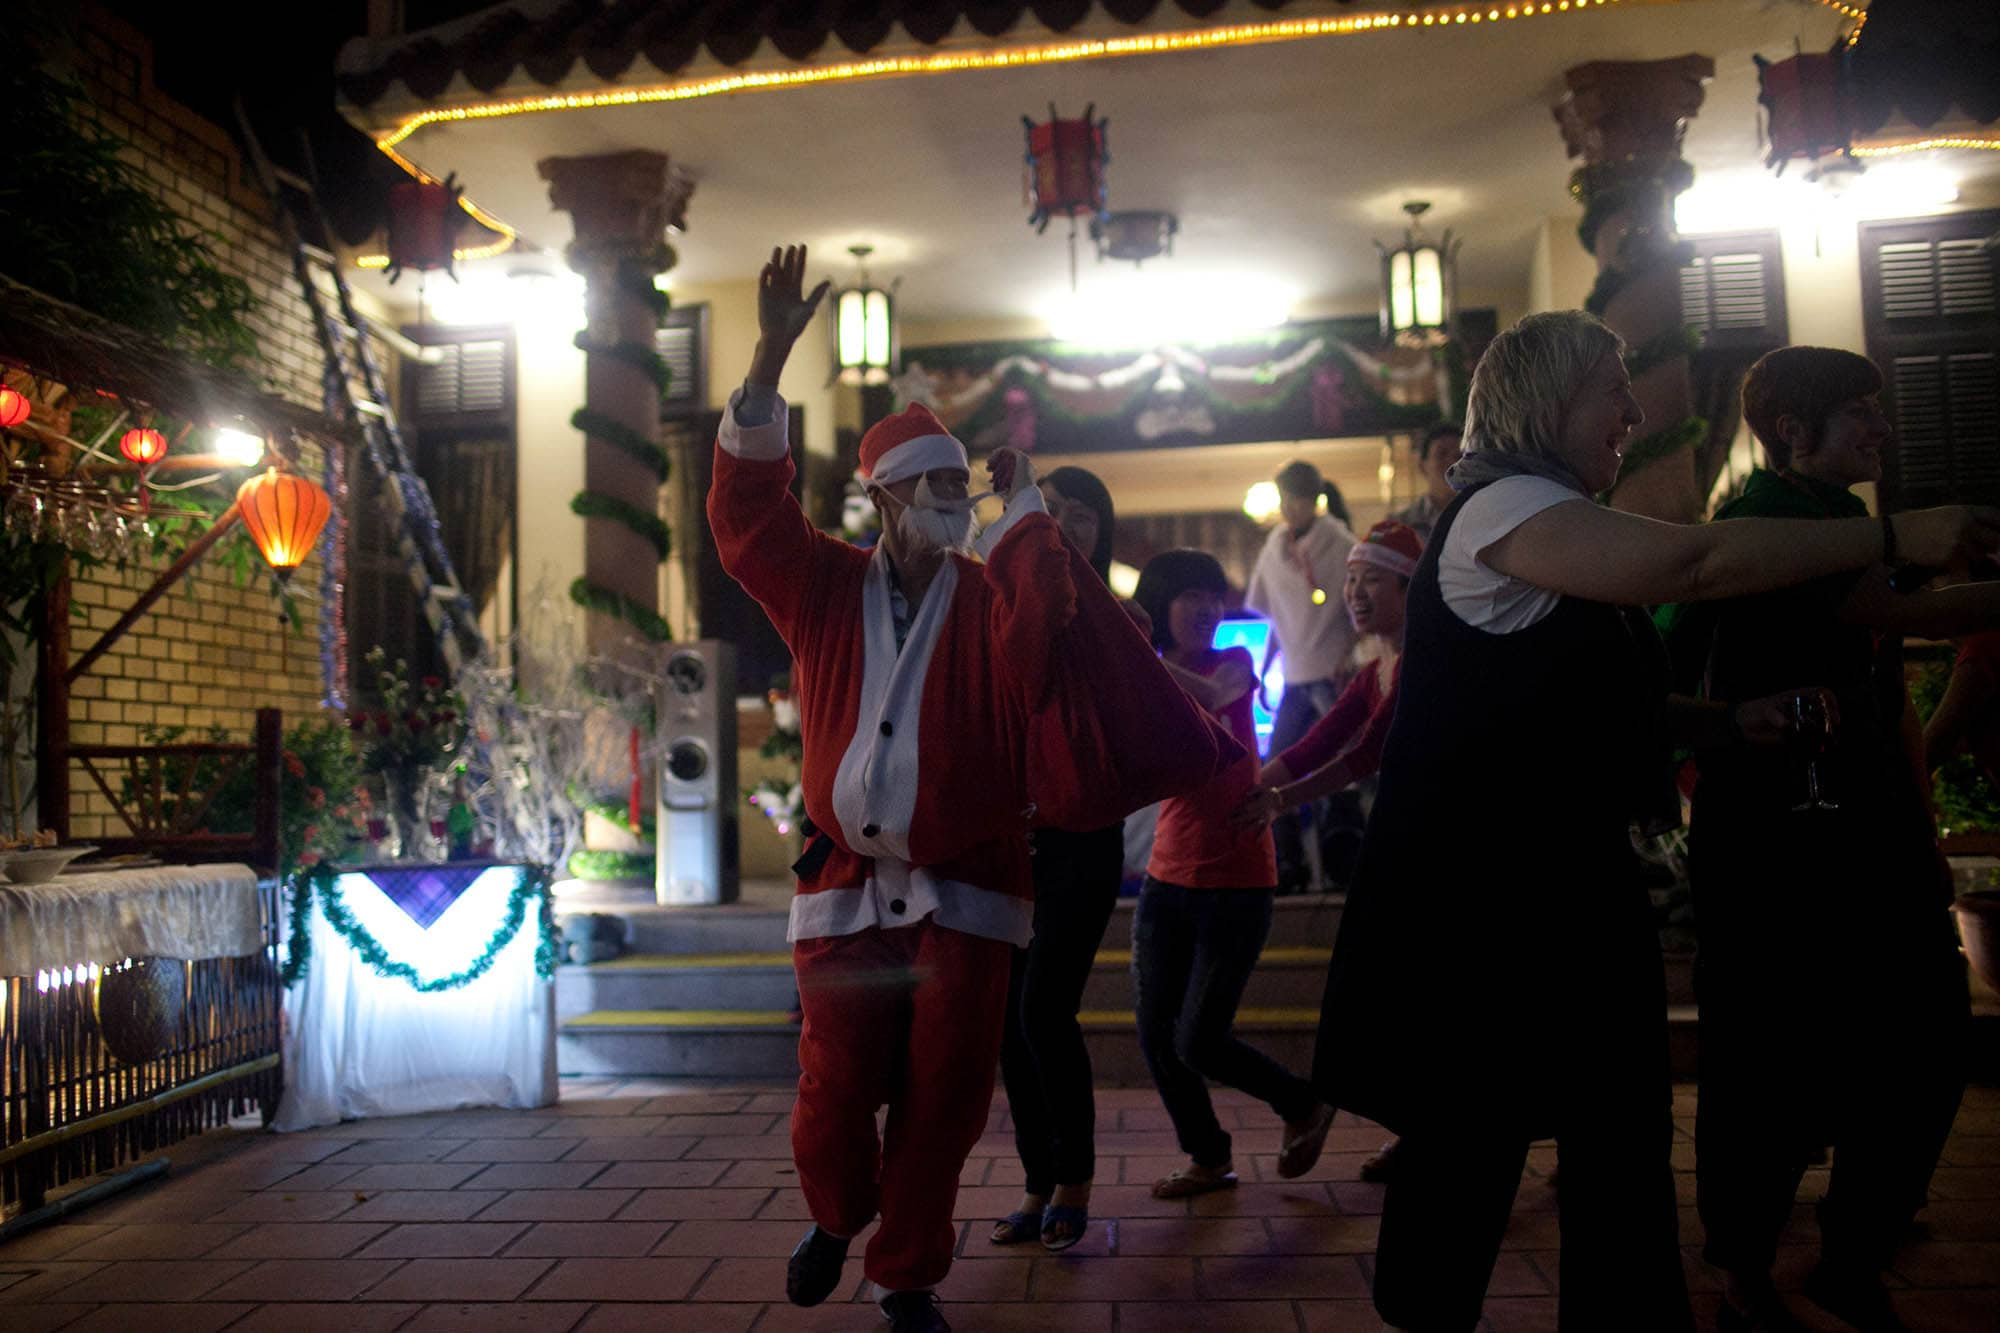 A Hoi An Christmas - Celebrating Christmas in Hoi An, Vietnam.